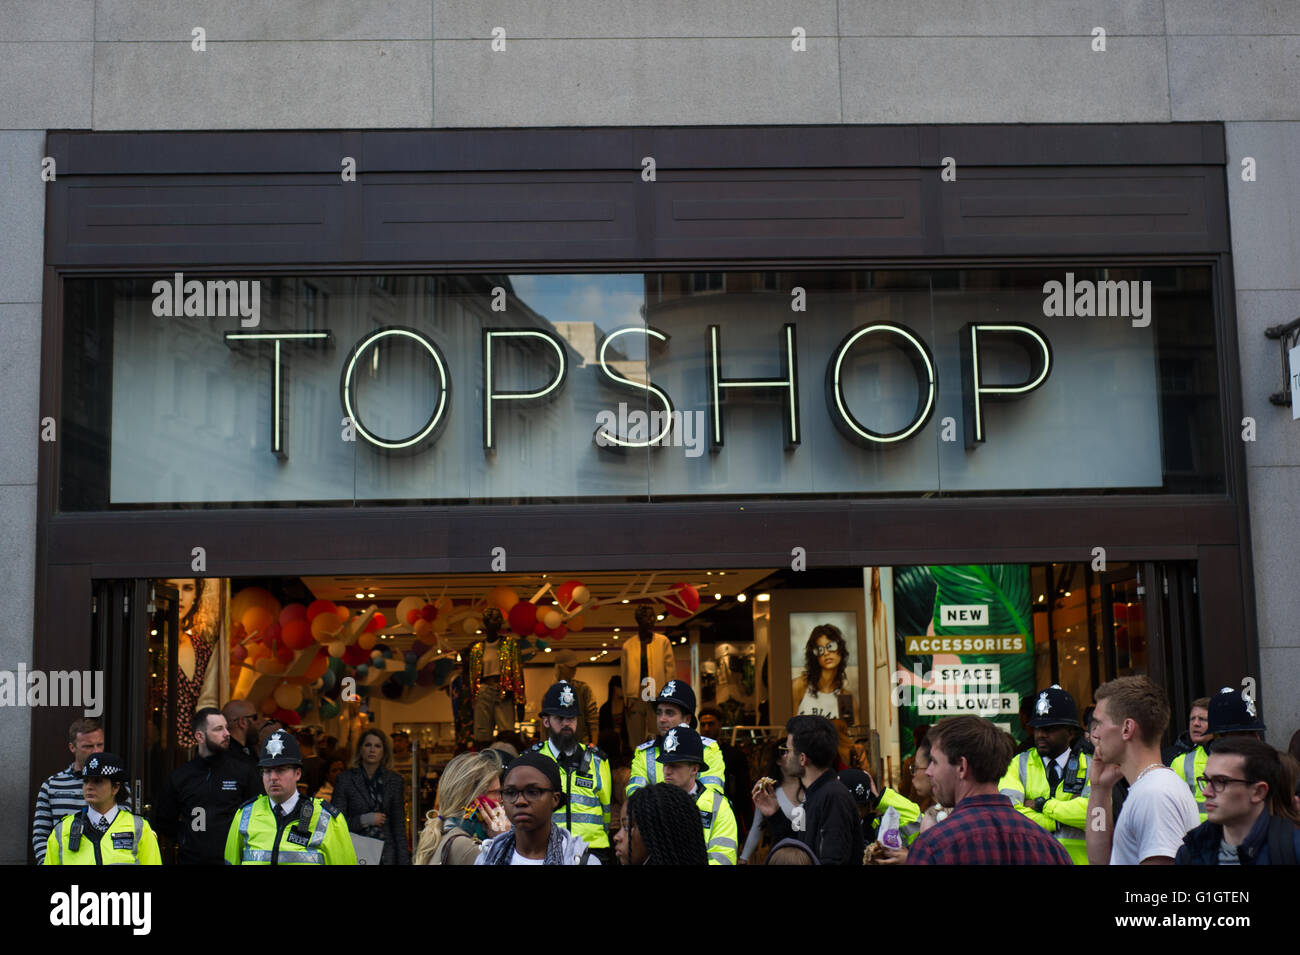 London, England, UK. 14th, May, 2016. Activists gather outside Topshop on Oxford Street toprotest against cleaners - Stock Image